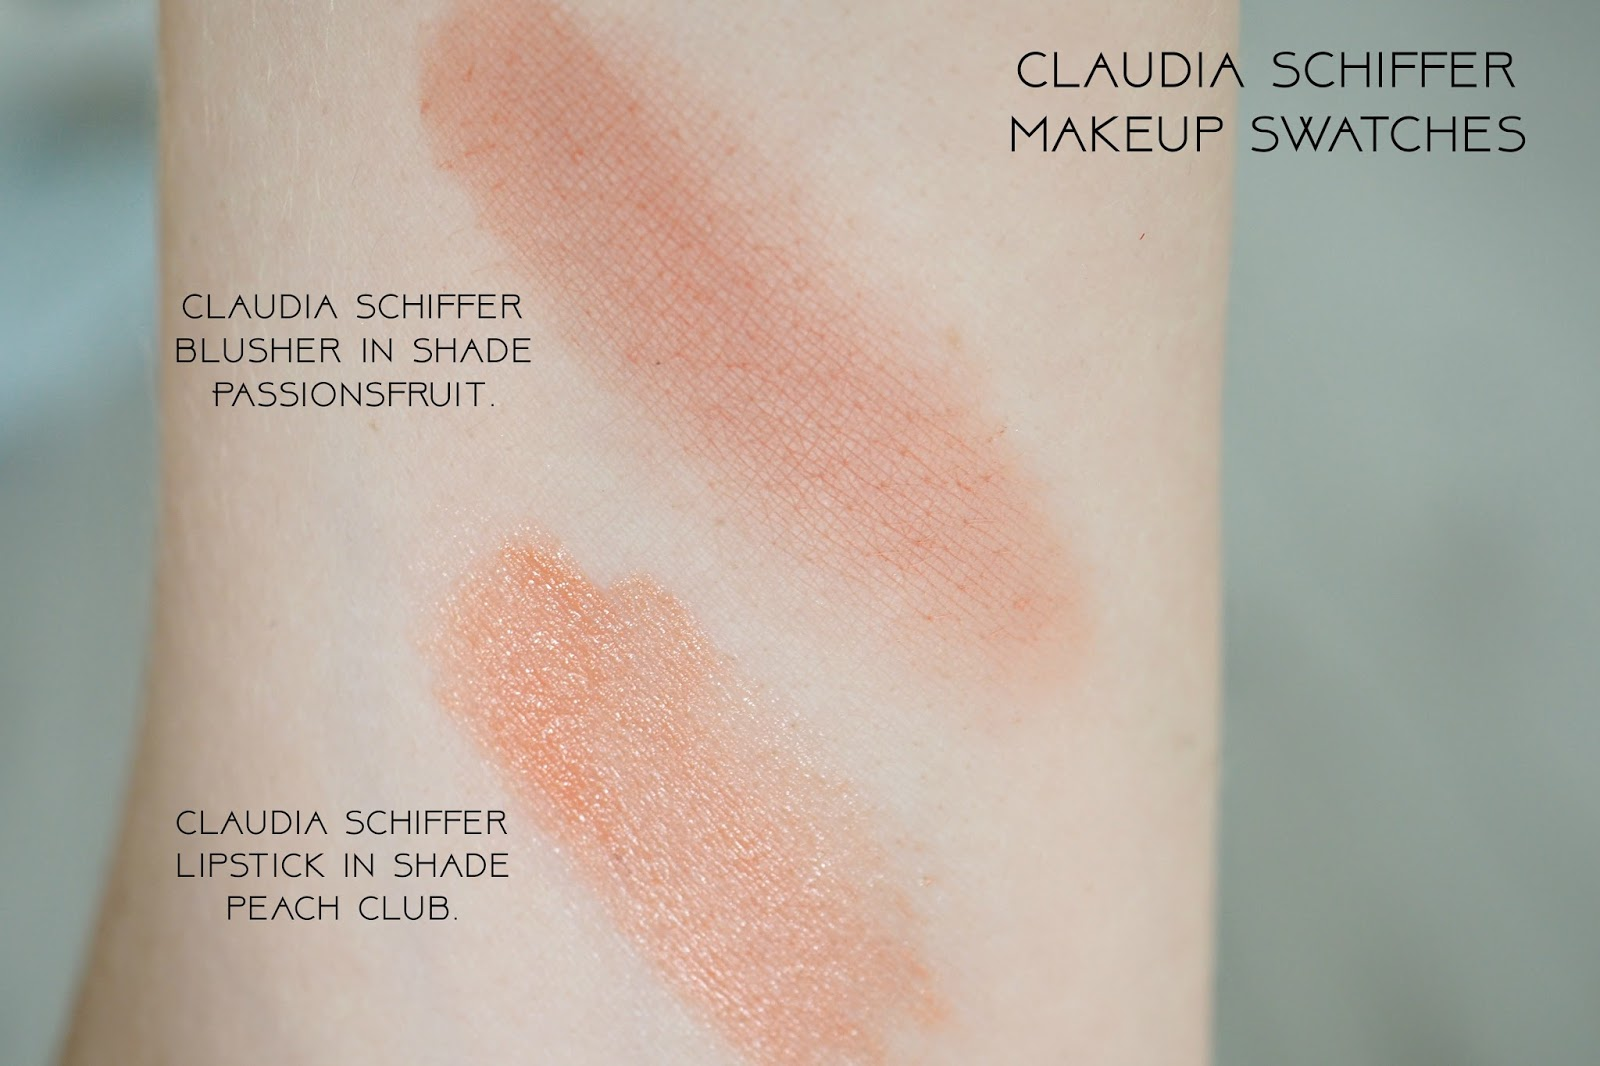 Claudia Schiffer Compact Blusher shade 22 - Passionfruit swatch and lipstick in shade 180 Peach Club swatch